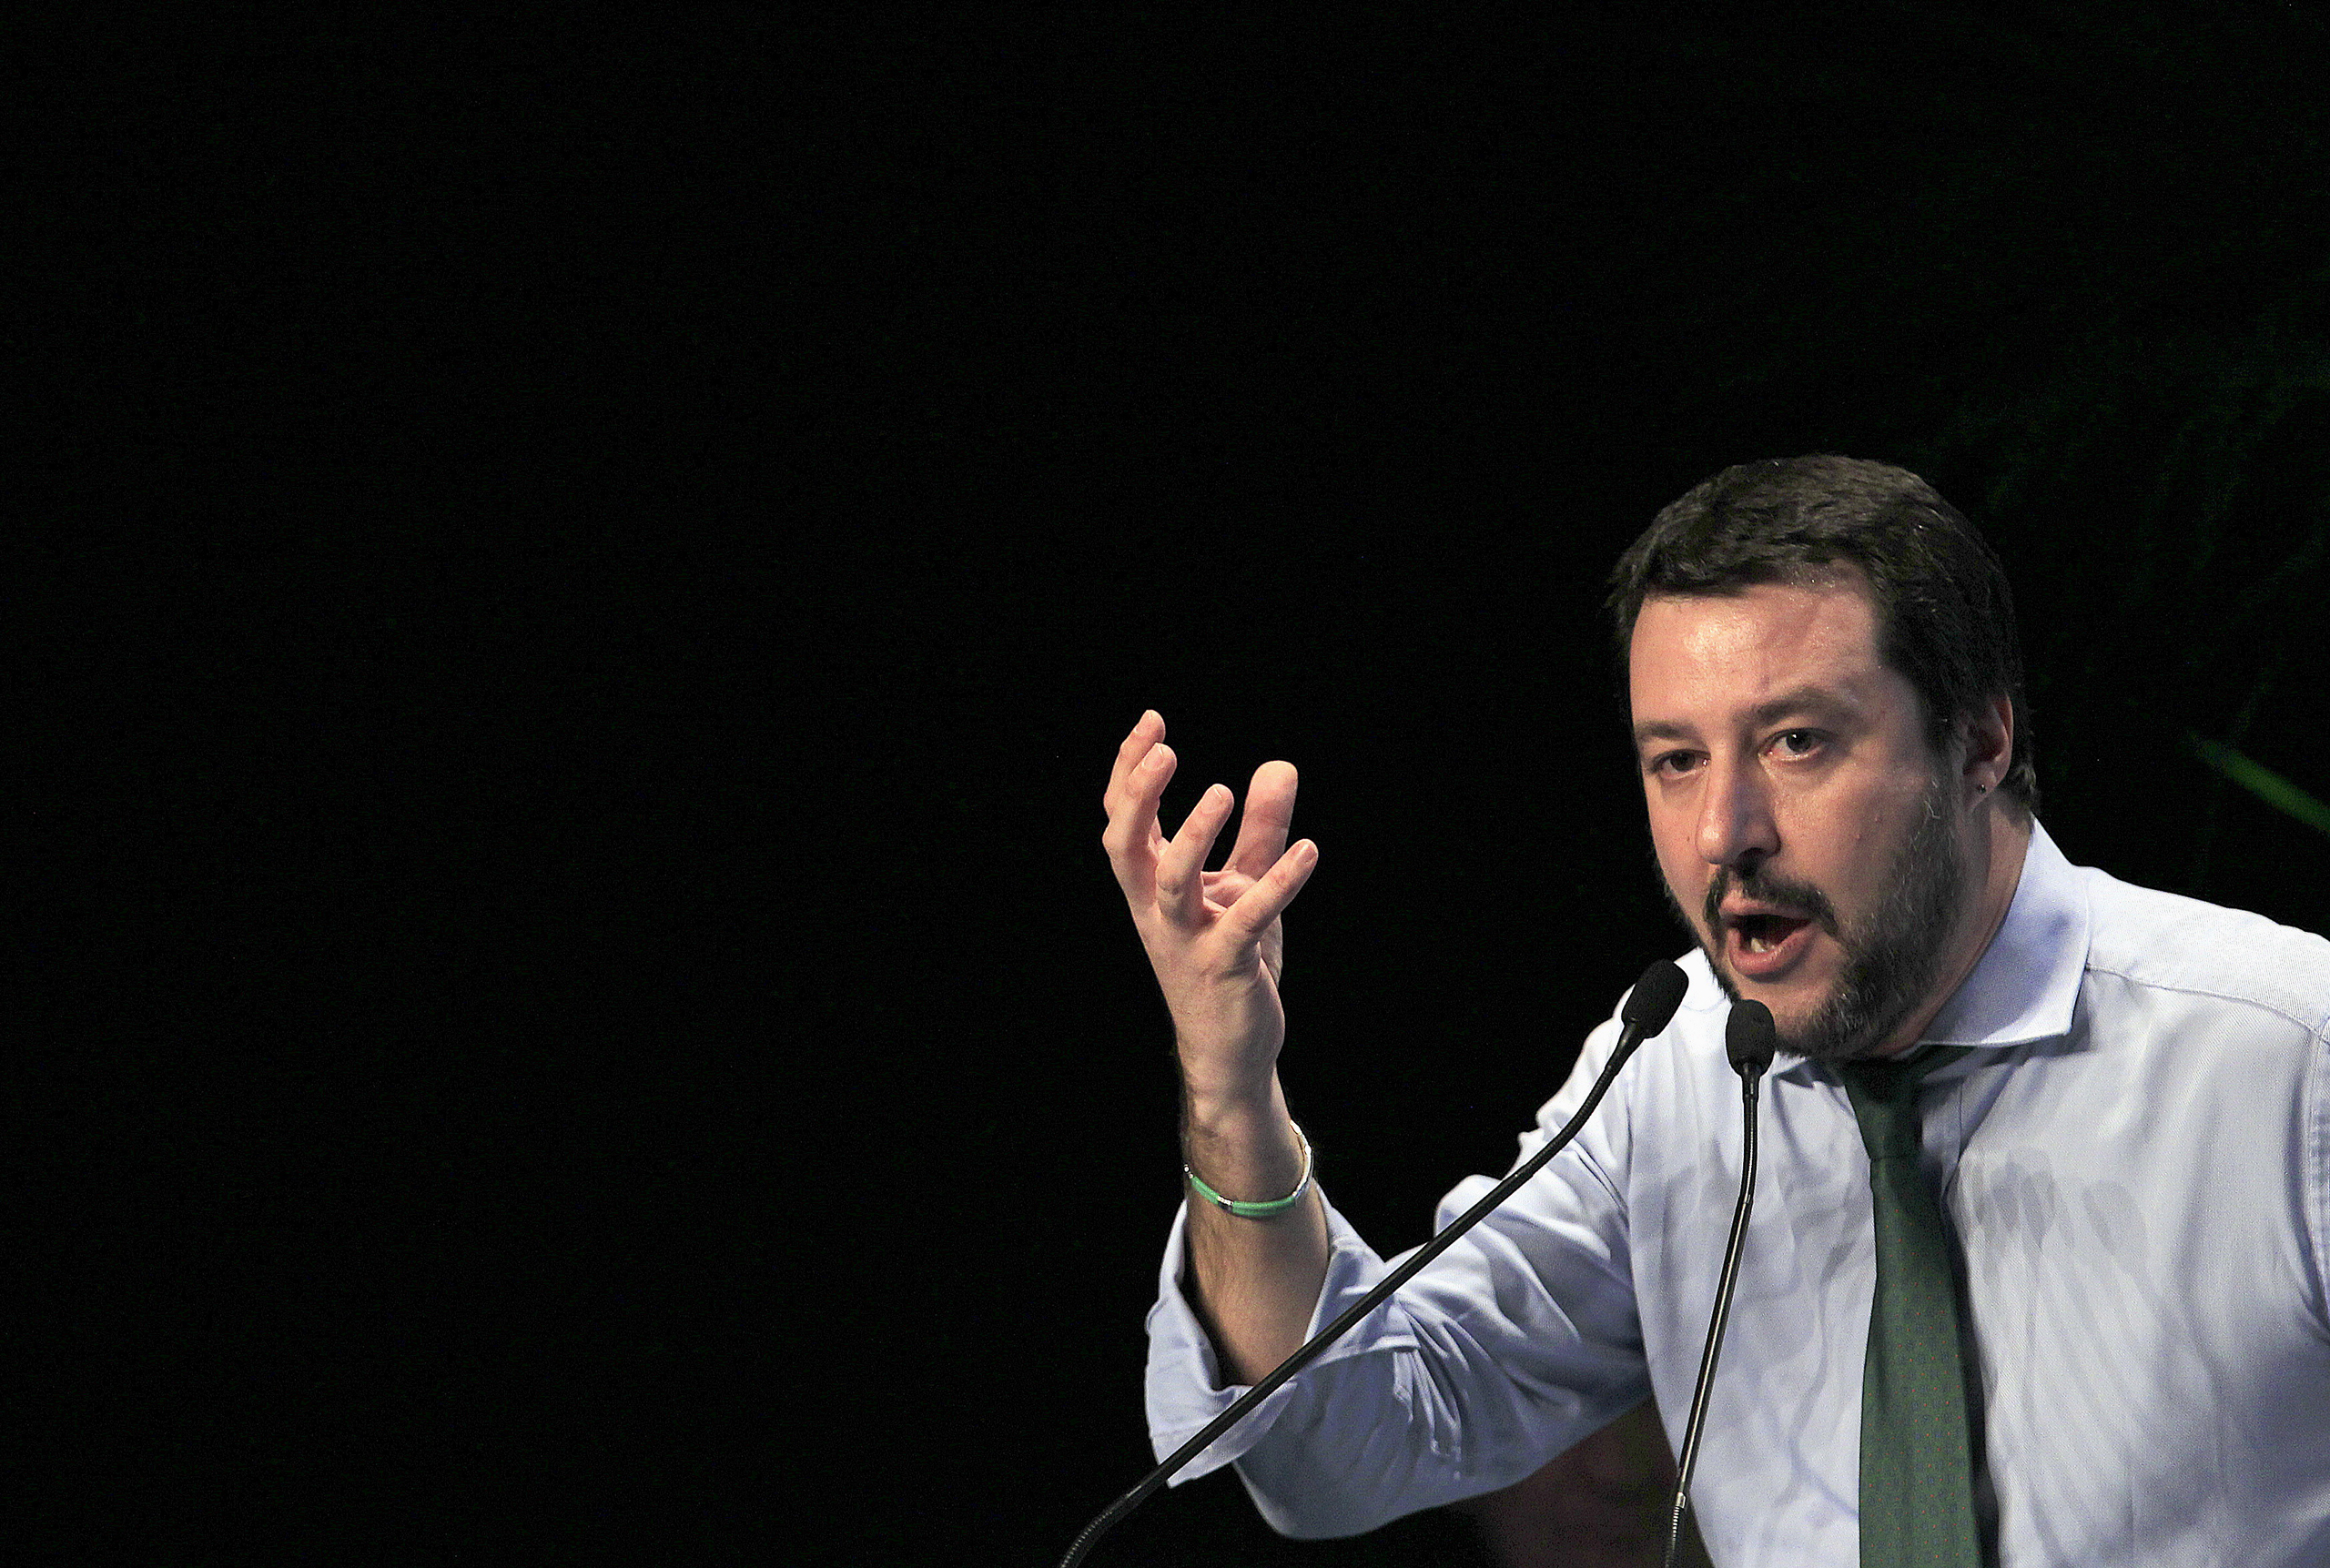 Northern League leader Matteo Salvini gestures during the  Europe of Nations and Freedom  meeting in Milan on Jan. 28, 2016.